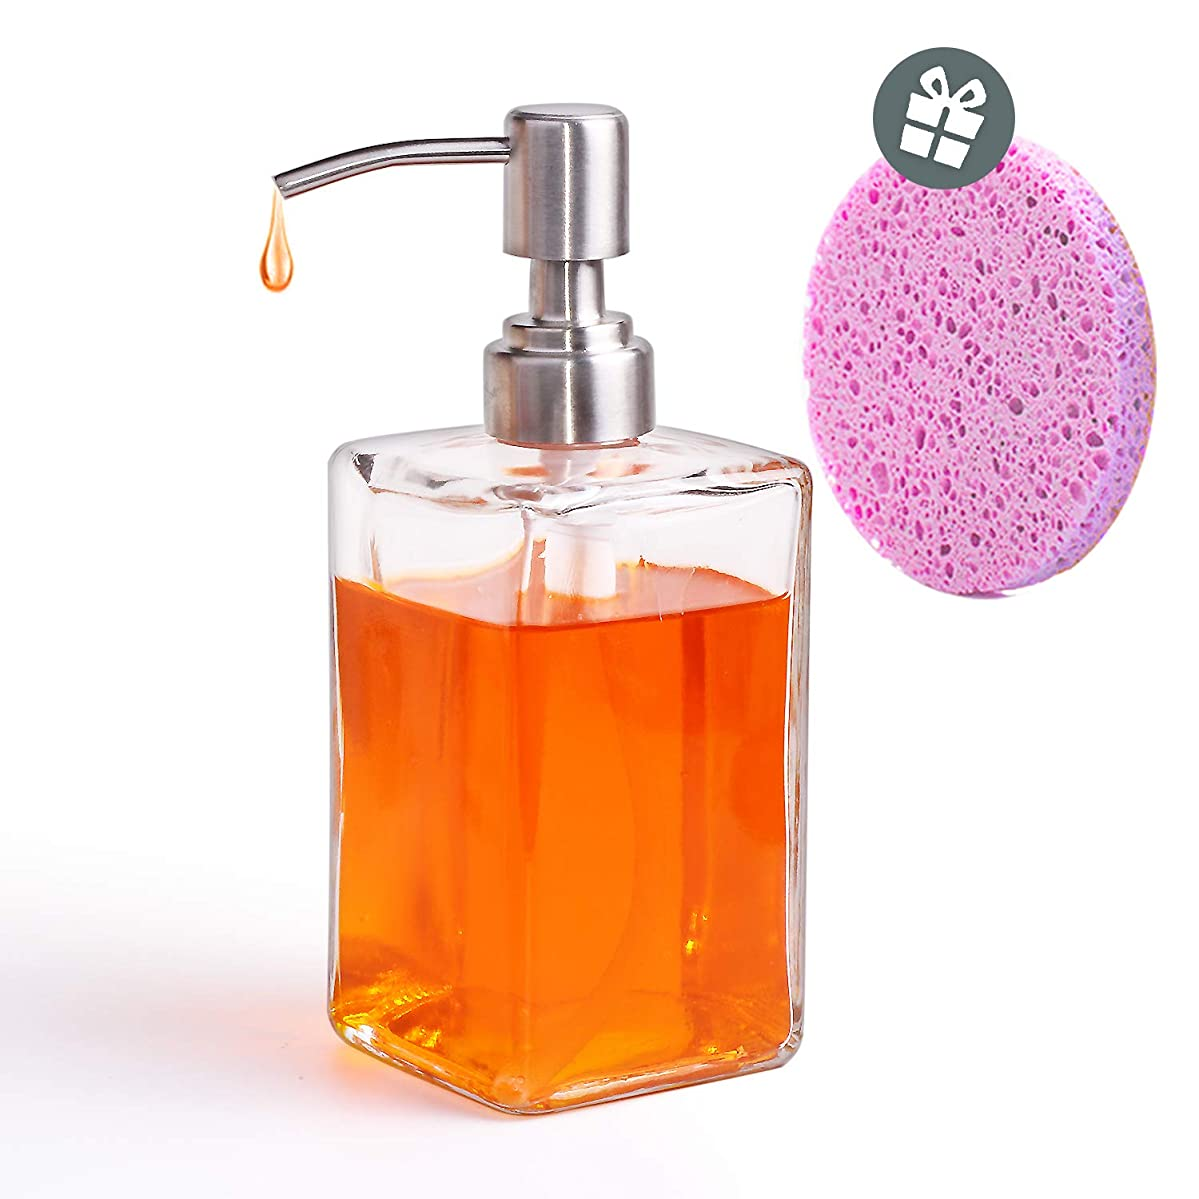 10.58-Ounce Clear Glass Square Bottles, Glass Soap Dispenser, Hand Soap Dispenser with Stainless Steel Pumps, Suitable for Essential Oils, Lotions, Liquid Soaps